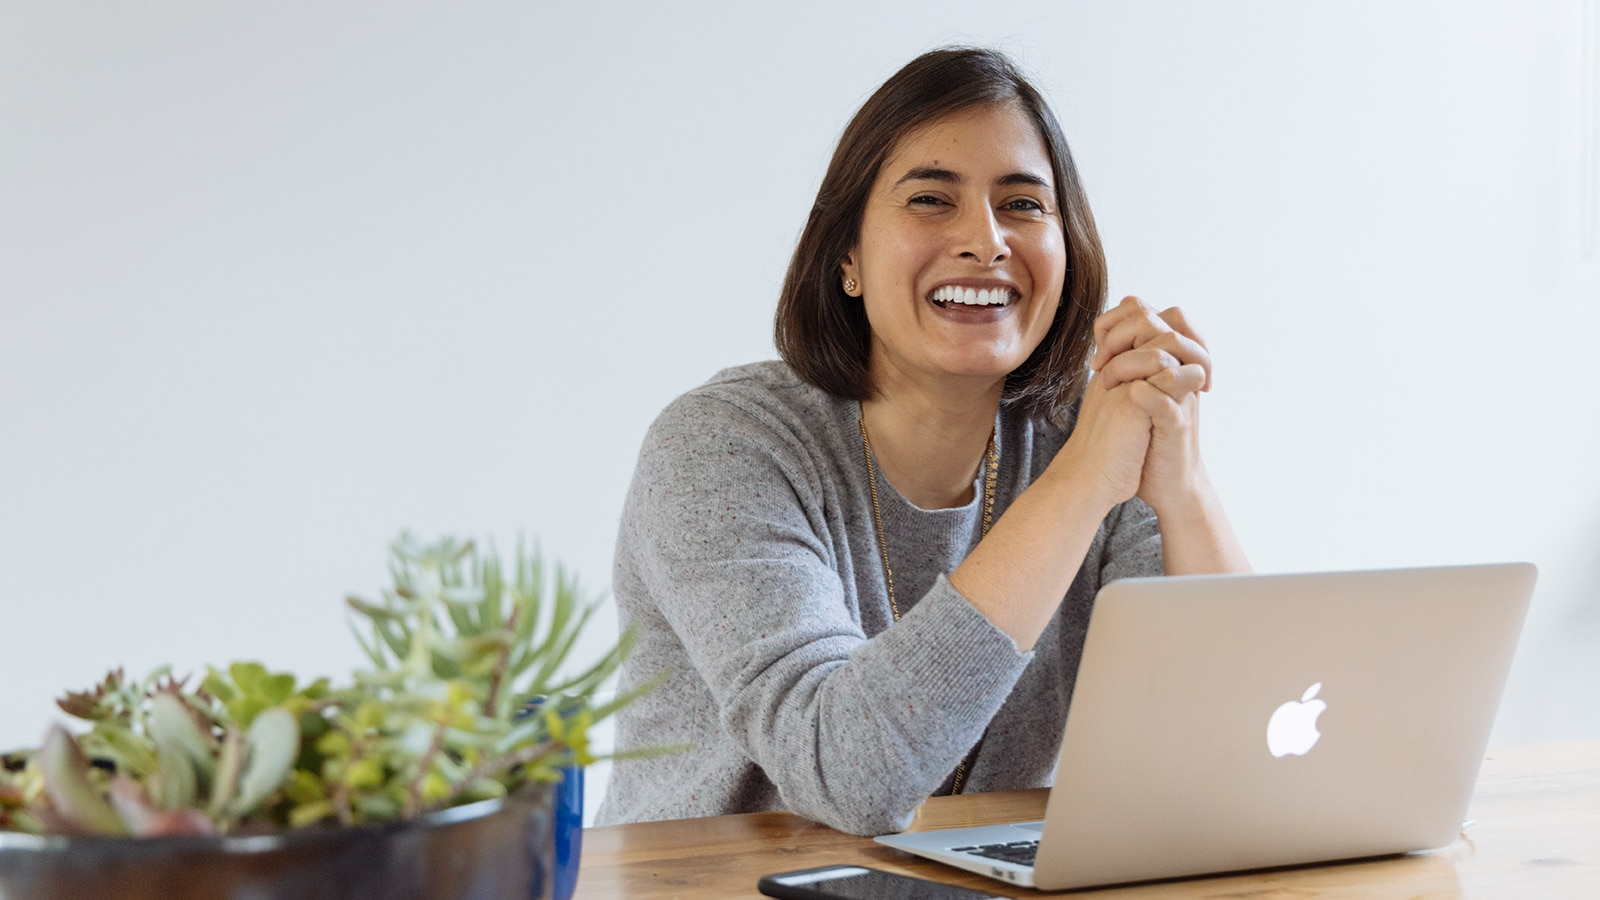 A woman sits at a table smiling with an open laptop and cellphone infront of her.